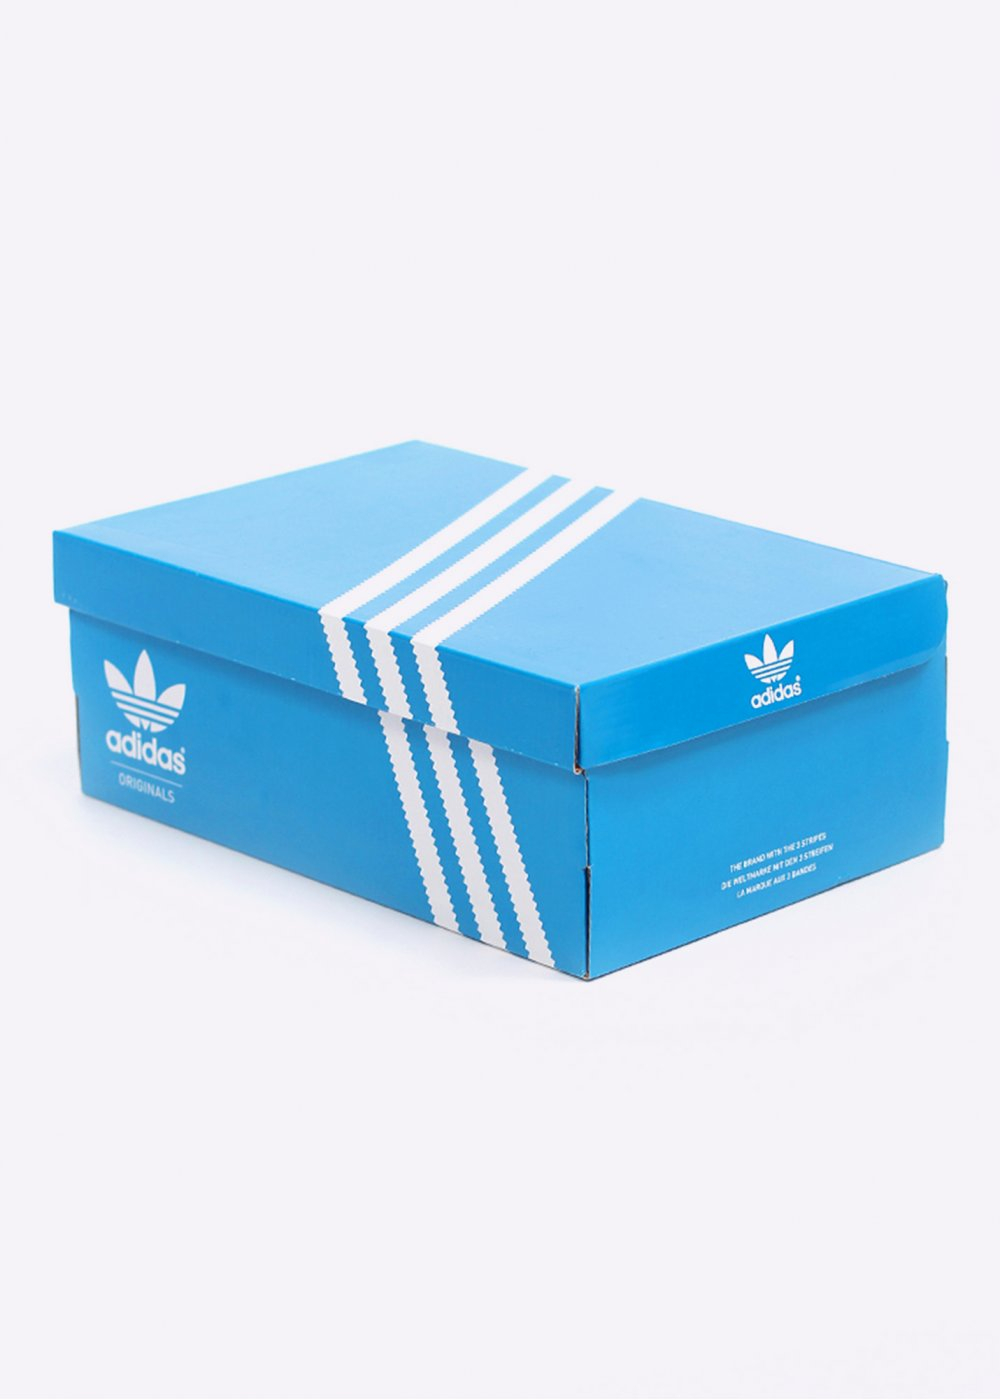 on sale b20d7 12a2f Gazelle OG Trainers - Air Force Blue   White